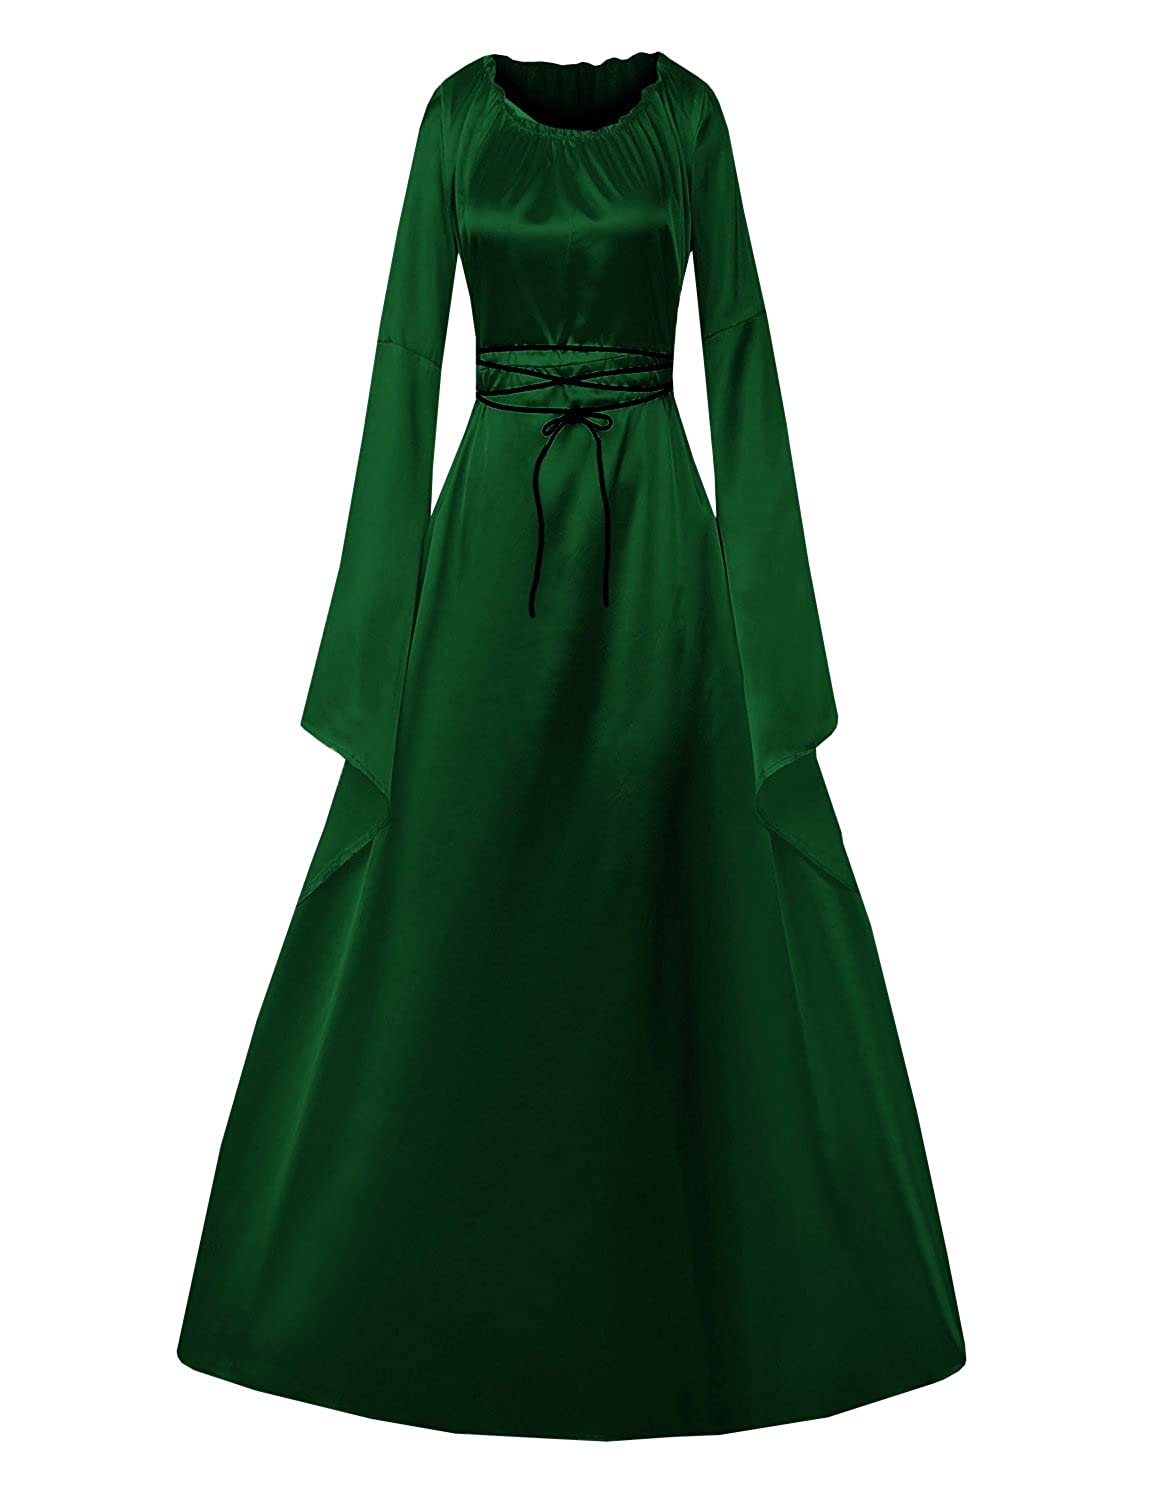 586d04f5acf7 ✿Material: This elegant gown is made of soft polyester and cotton blend  fiber , decorated with lace up . ✿Feature:Long sleeved vintage trumpet  gothic ...